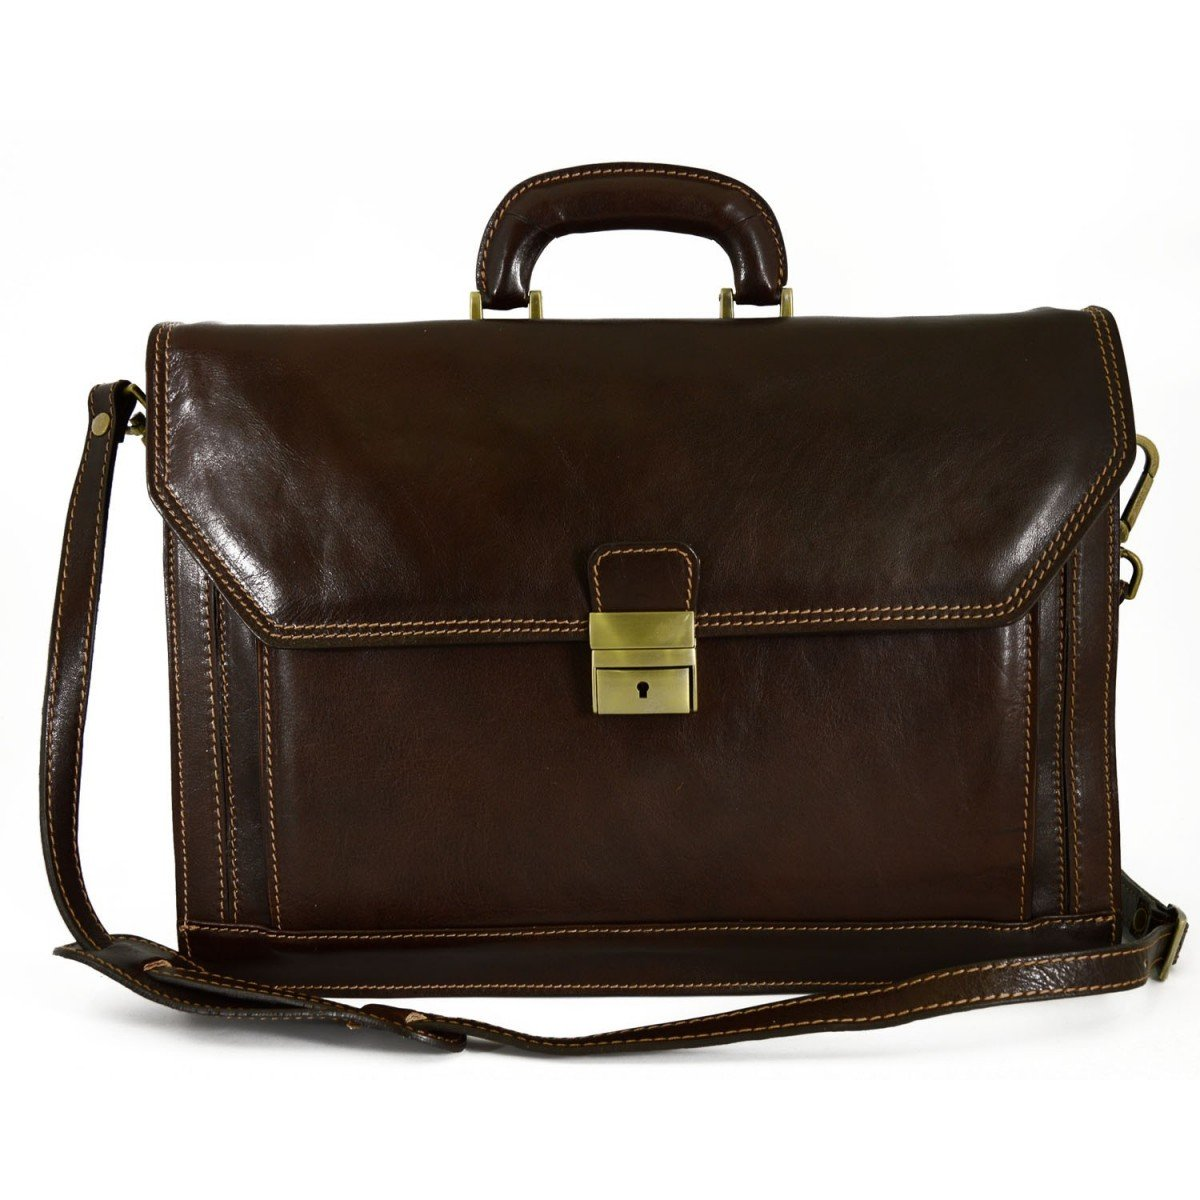 Made In Italy Genuine Leather Professional Briefcase 2 Compartments Front Pocket Color Dark Brown - Business Bag   B01CON7N4G